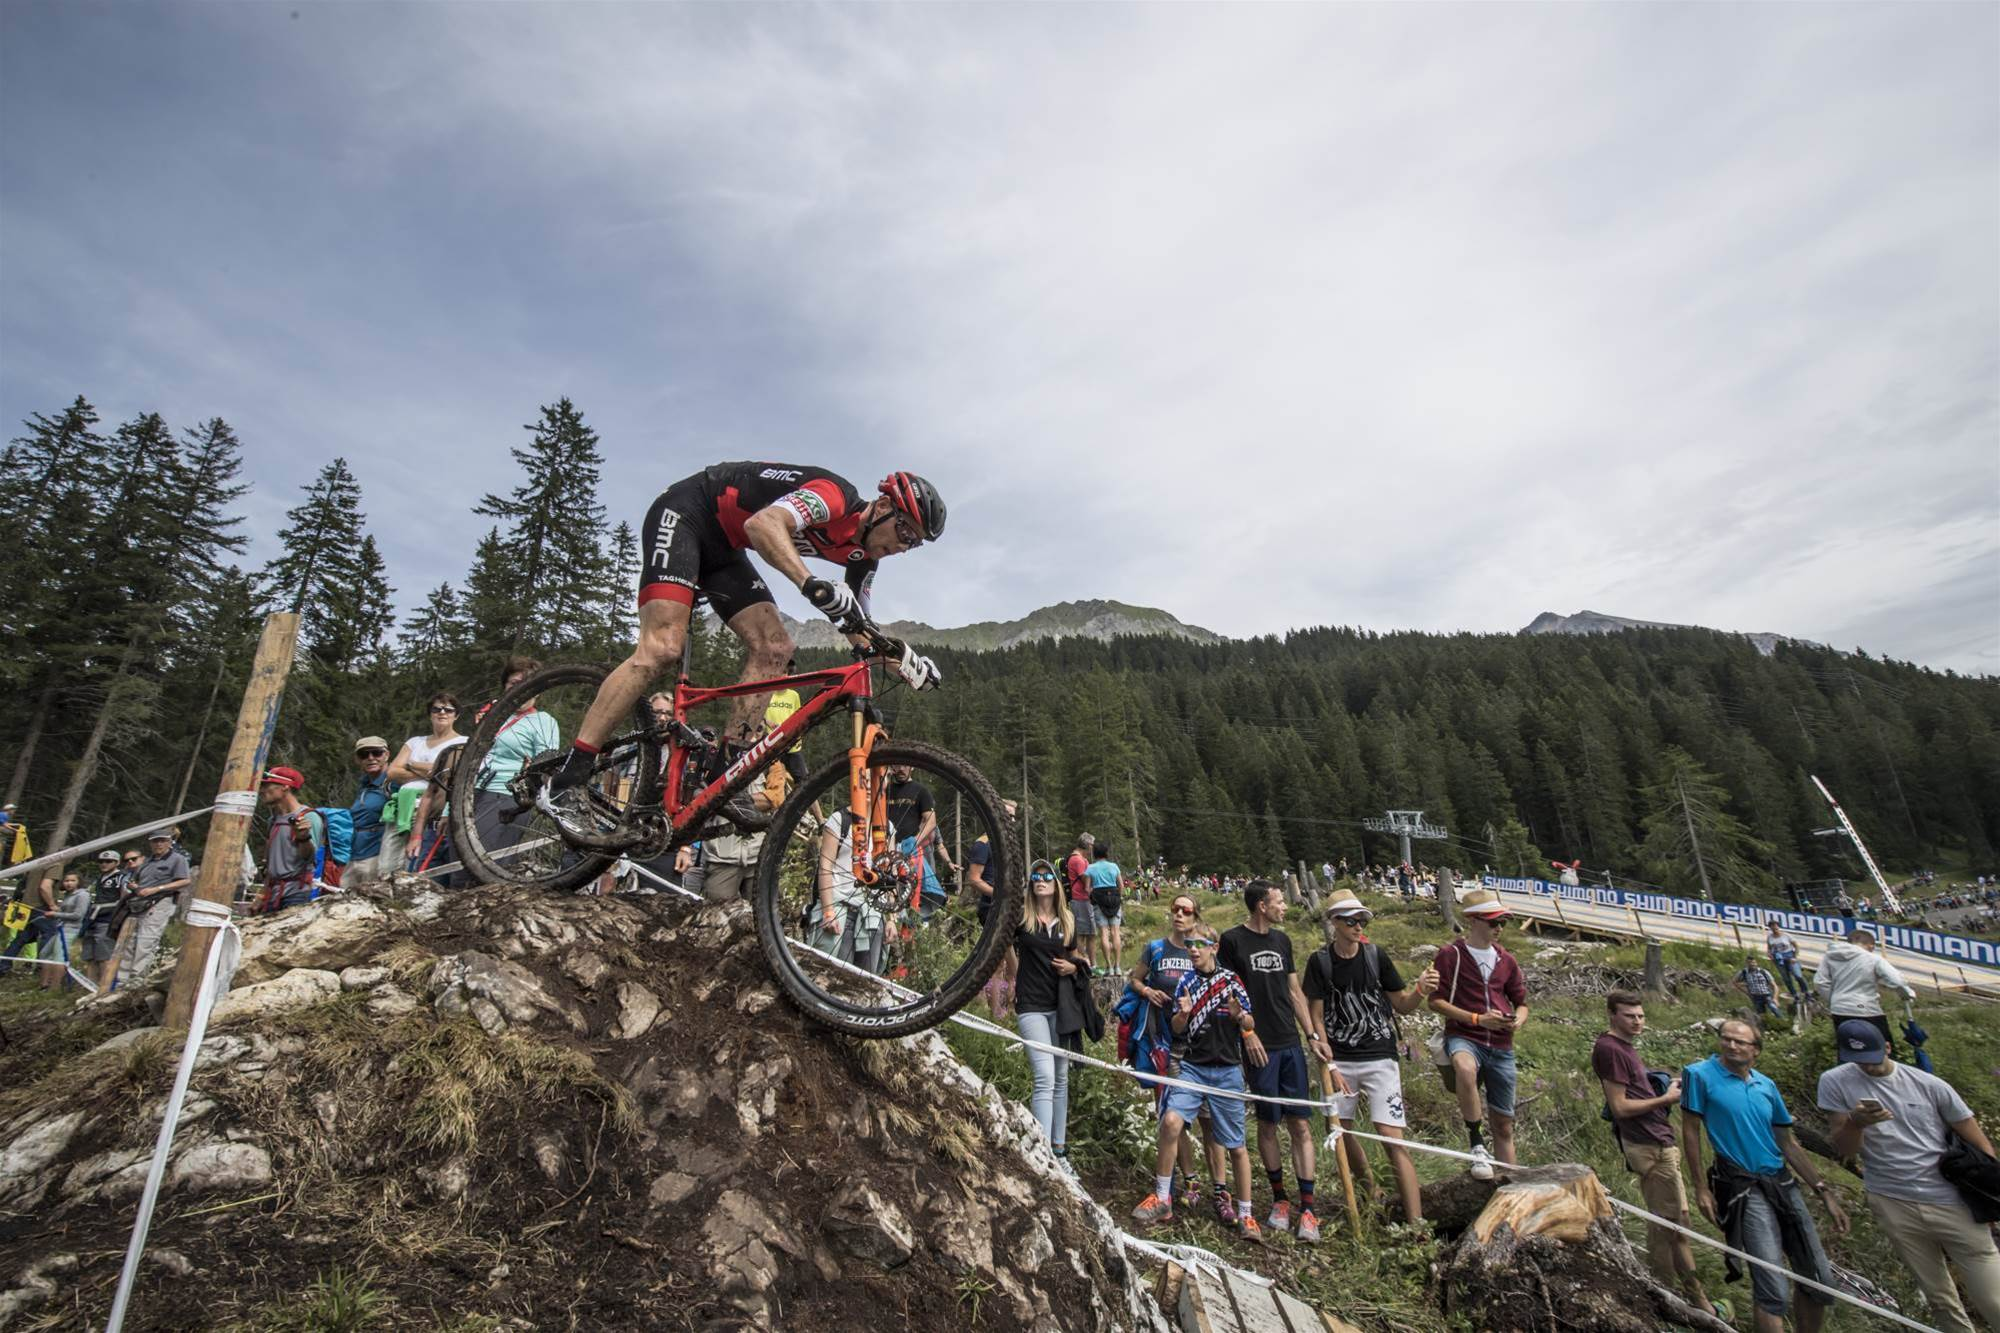 High drama at Lenzerheide World Cup